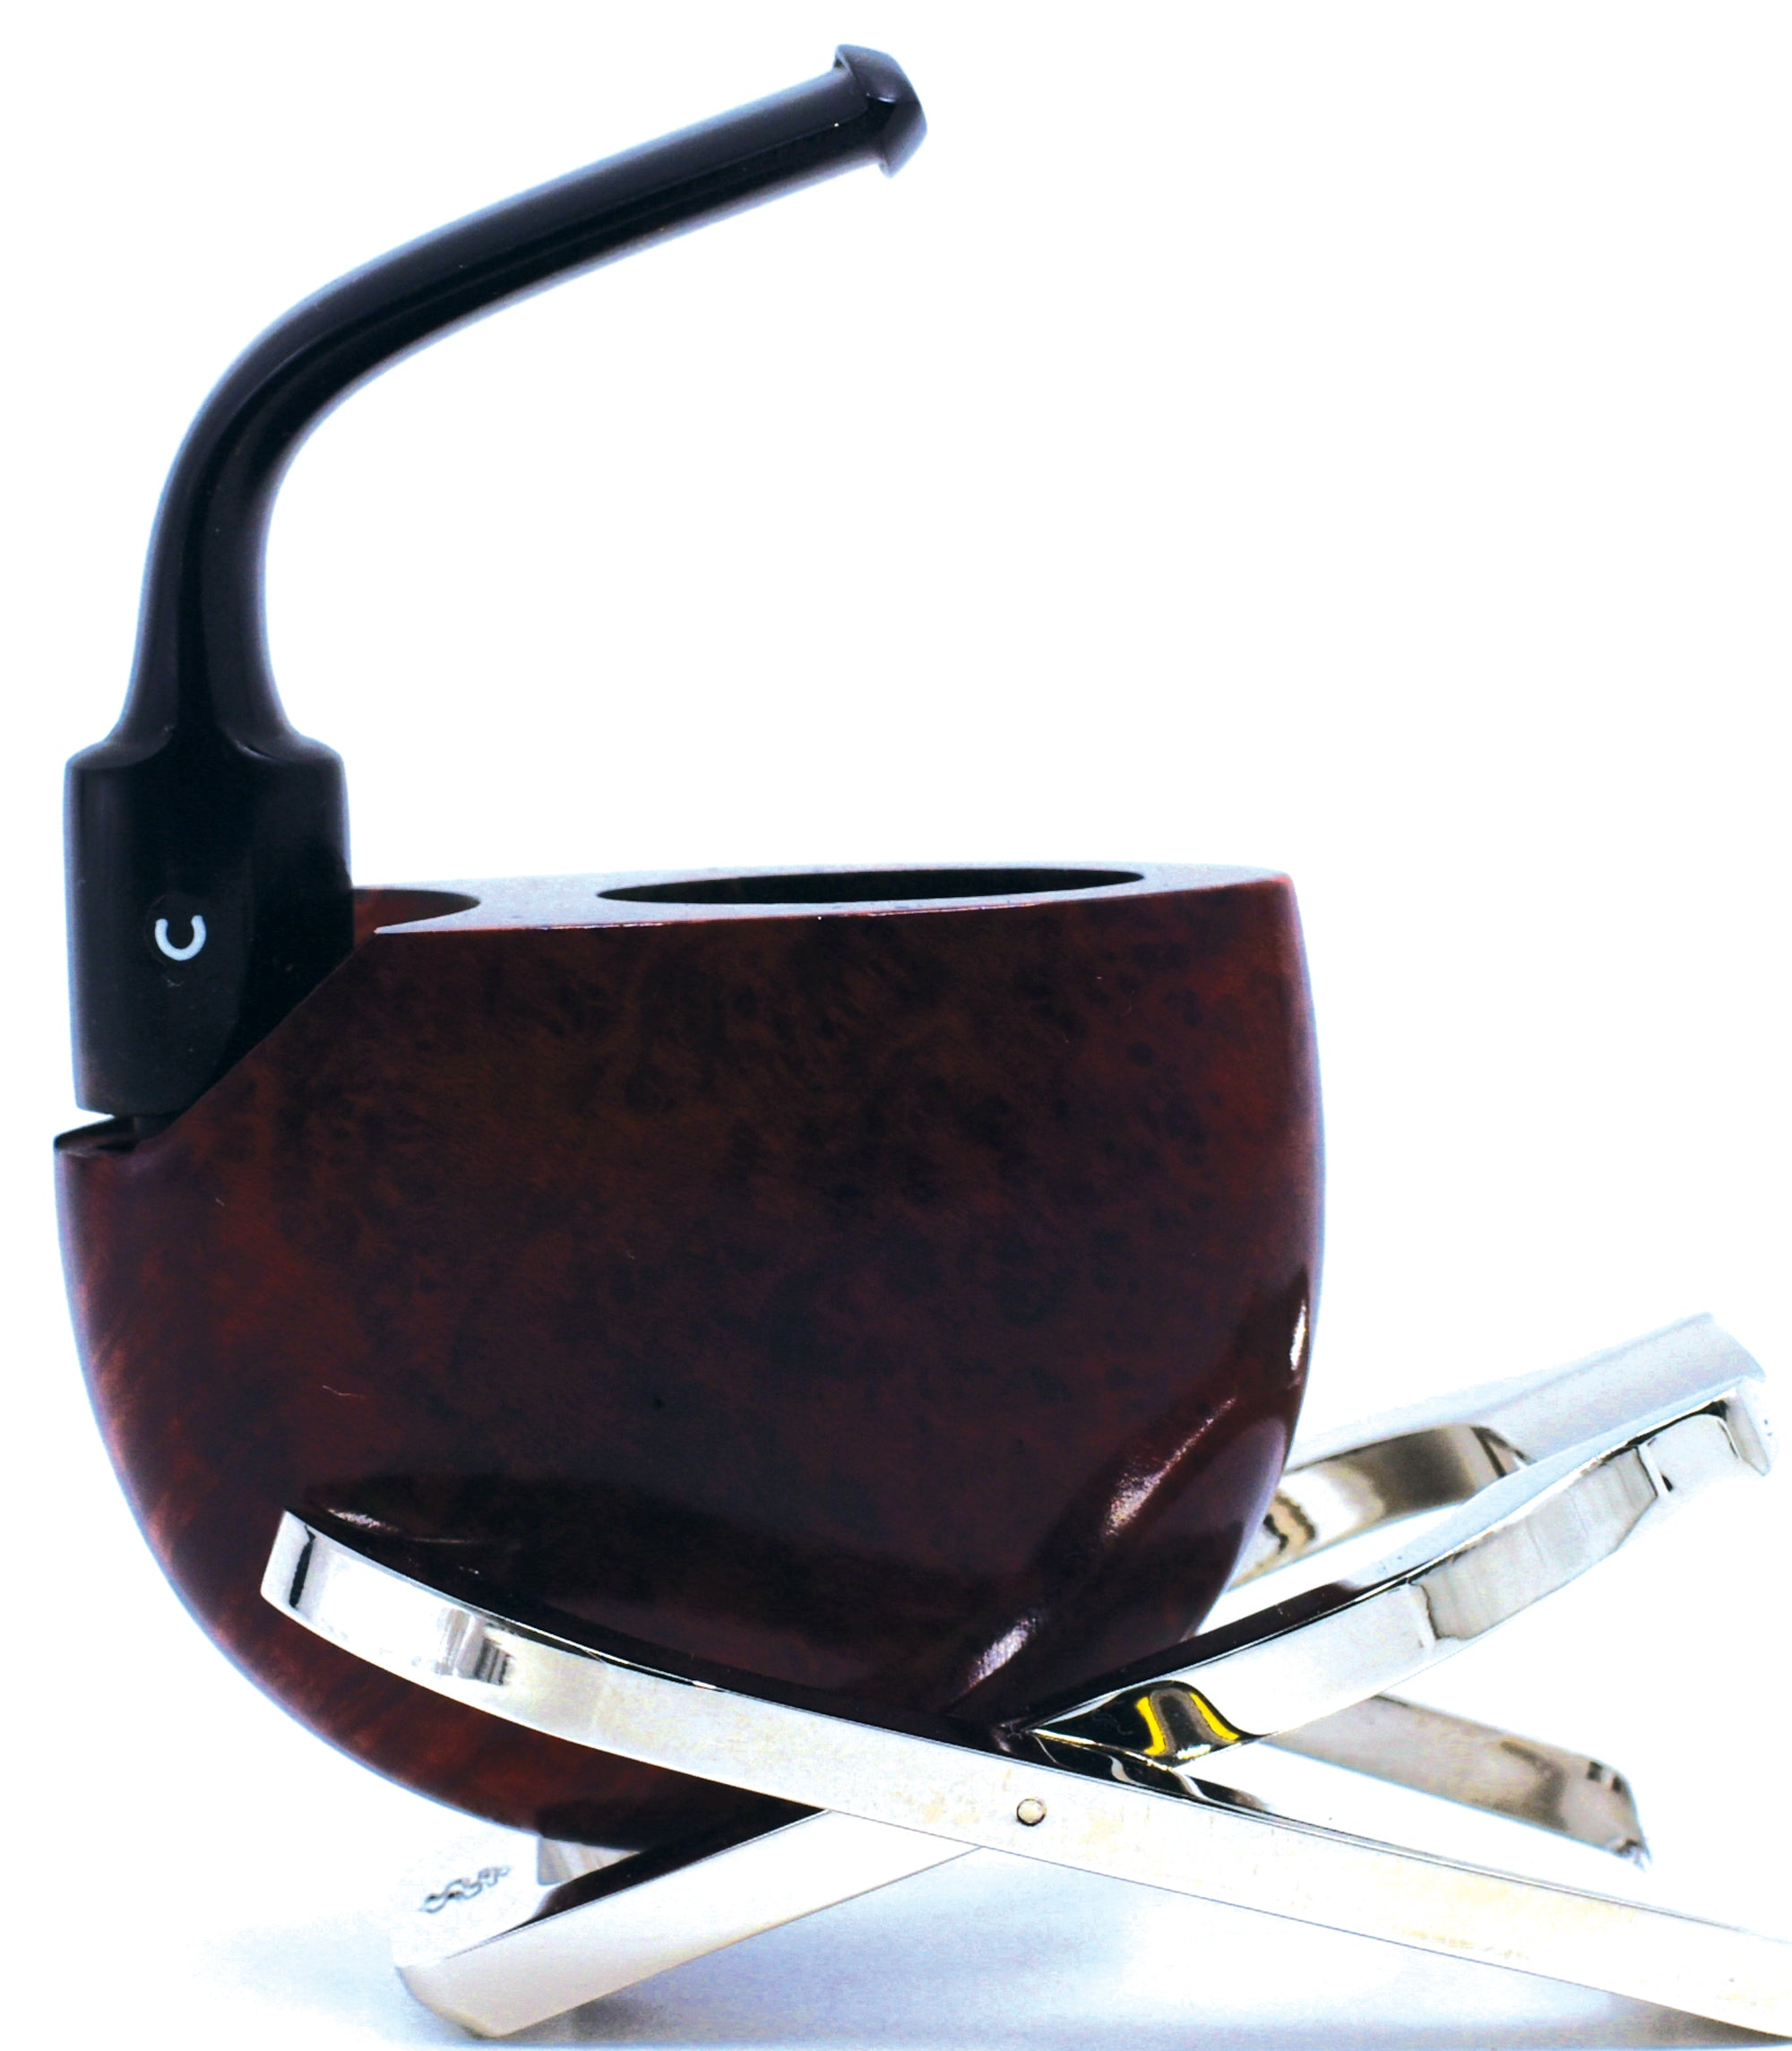 COMOY'S OF LONDON® VEST POCKET* Non-Filtered Briar Smoking Pipe Made in England Since 1825 / 01-01-102 Polish Dark